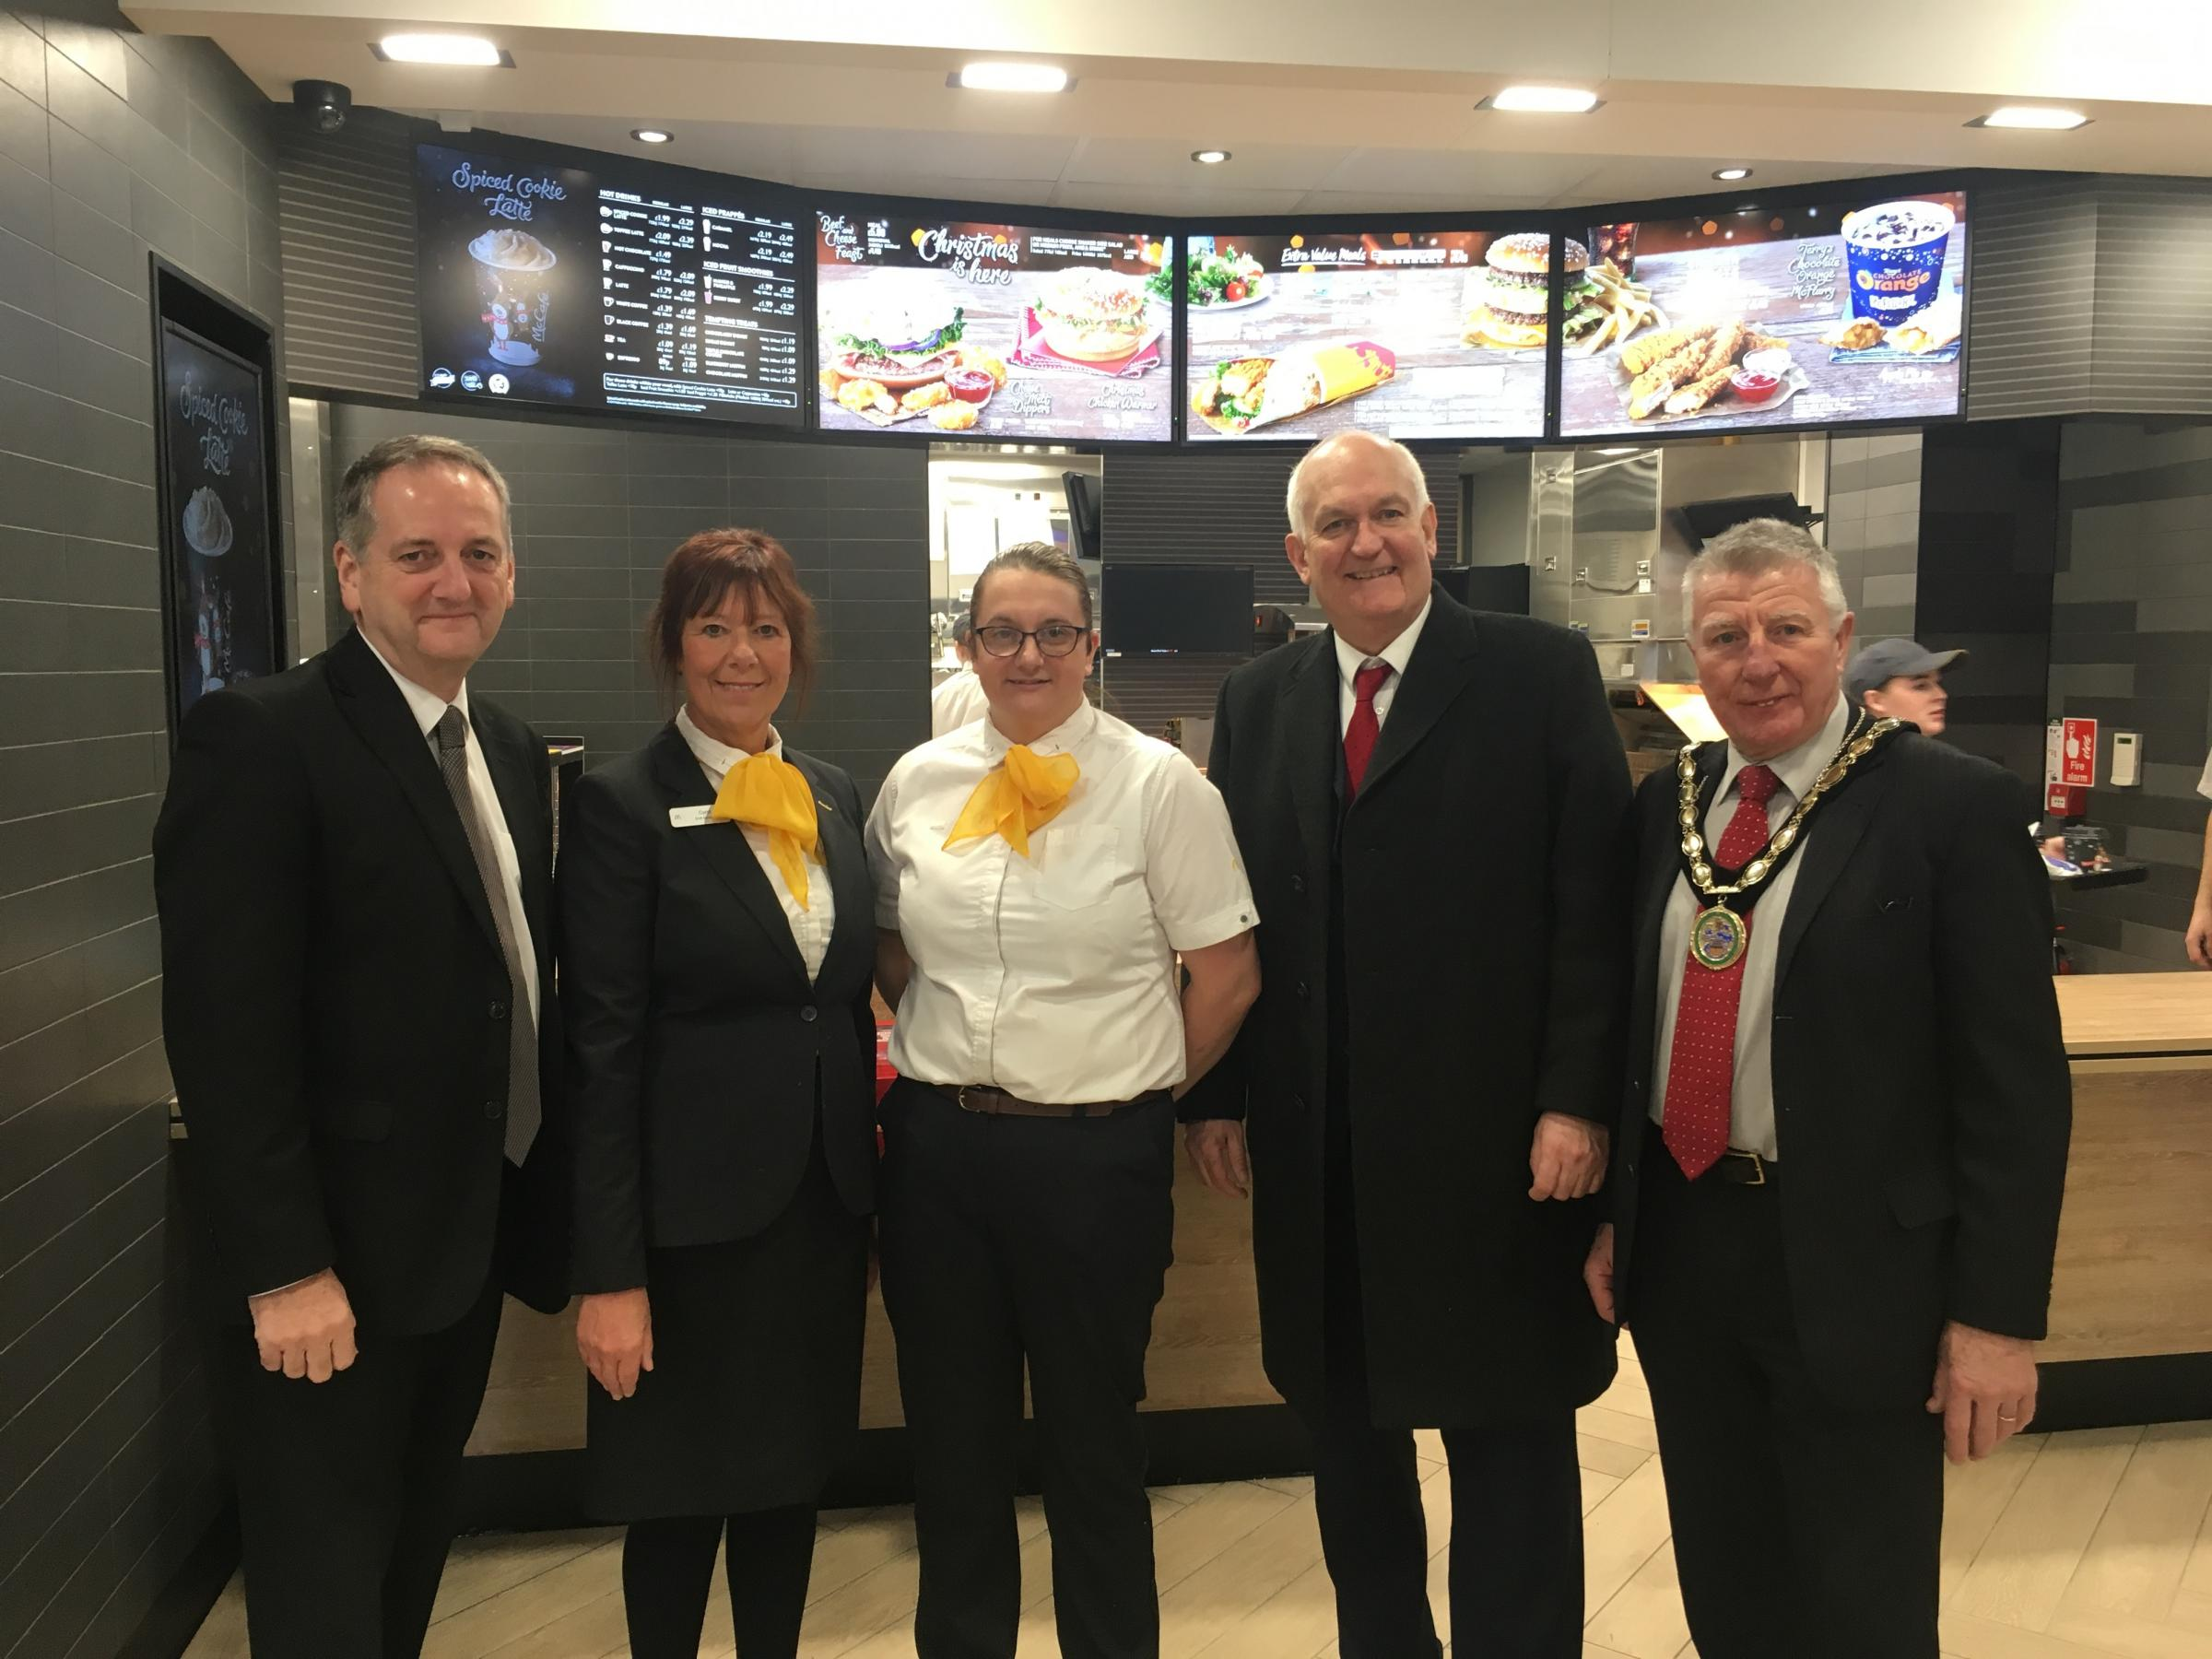 Stewart Williams franchisee, Carol Jones hospitality manager, Carol's daughter-in-law Sarah Jones, Chris Ruane, MP for the Vale of Clwyd and cllr Alan James, Mayor of Rhyl